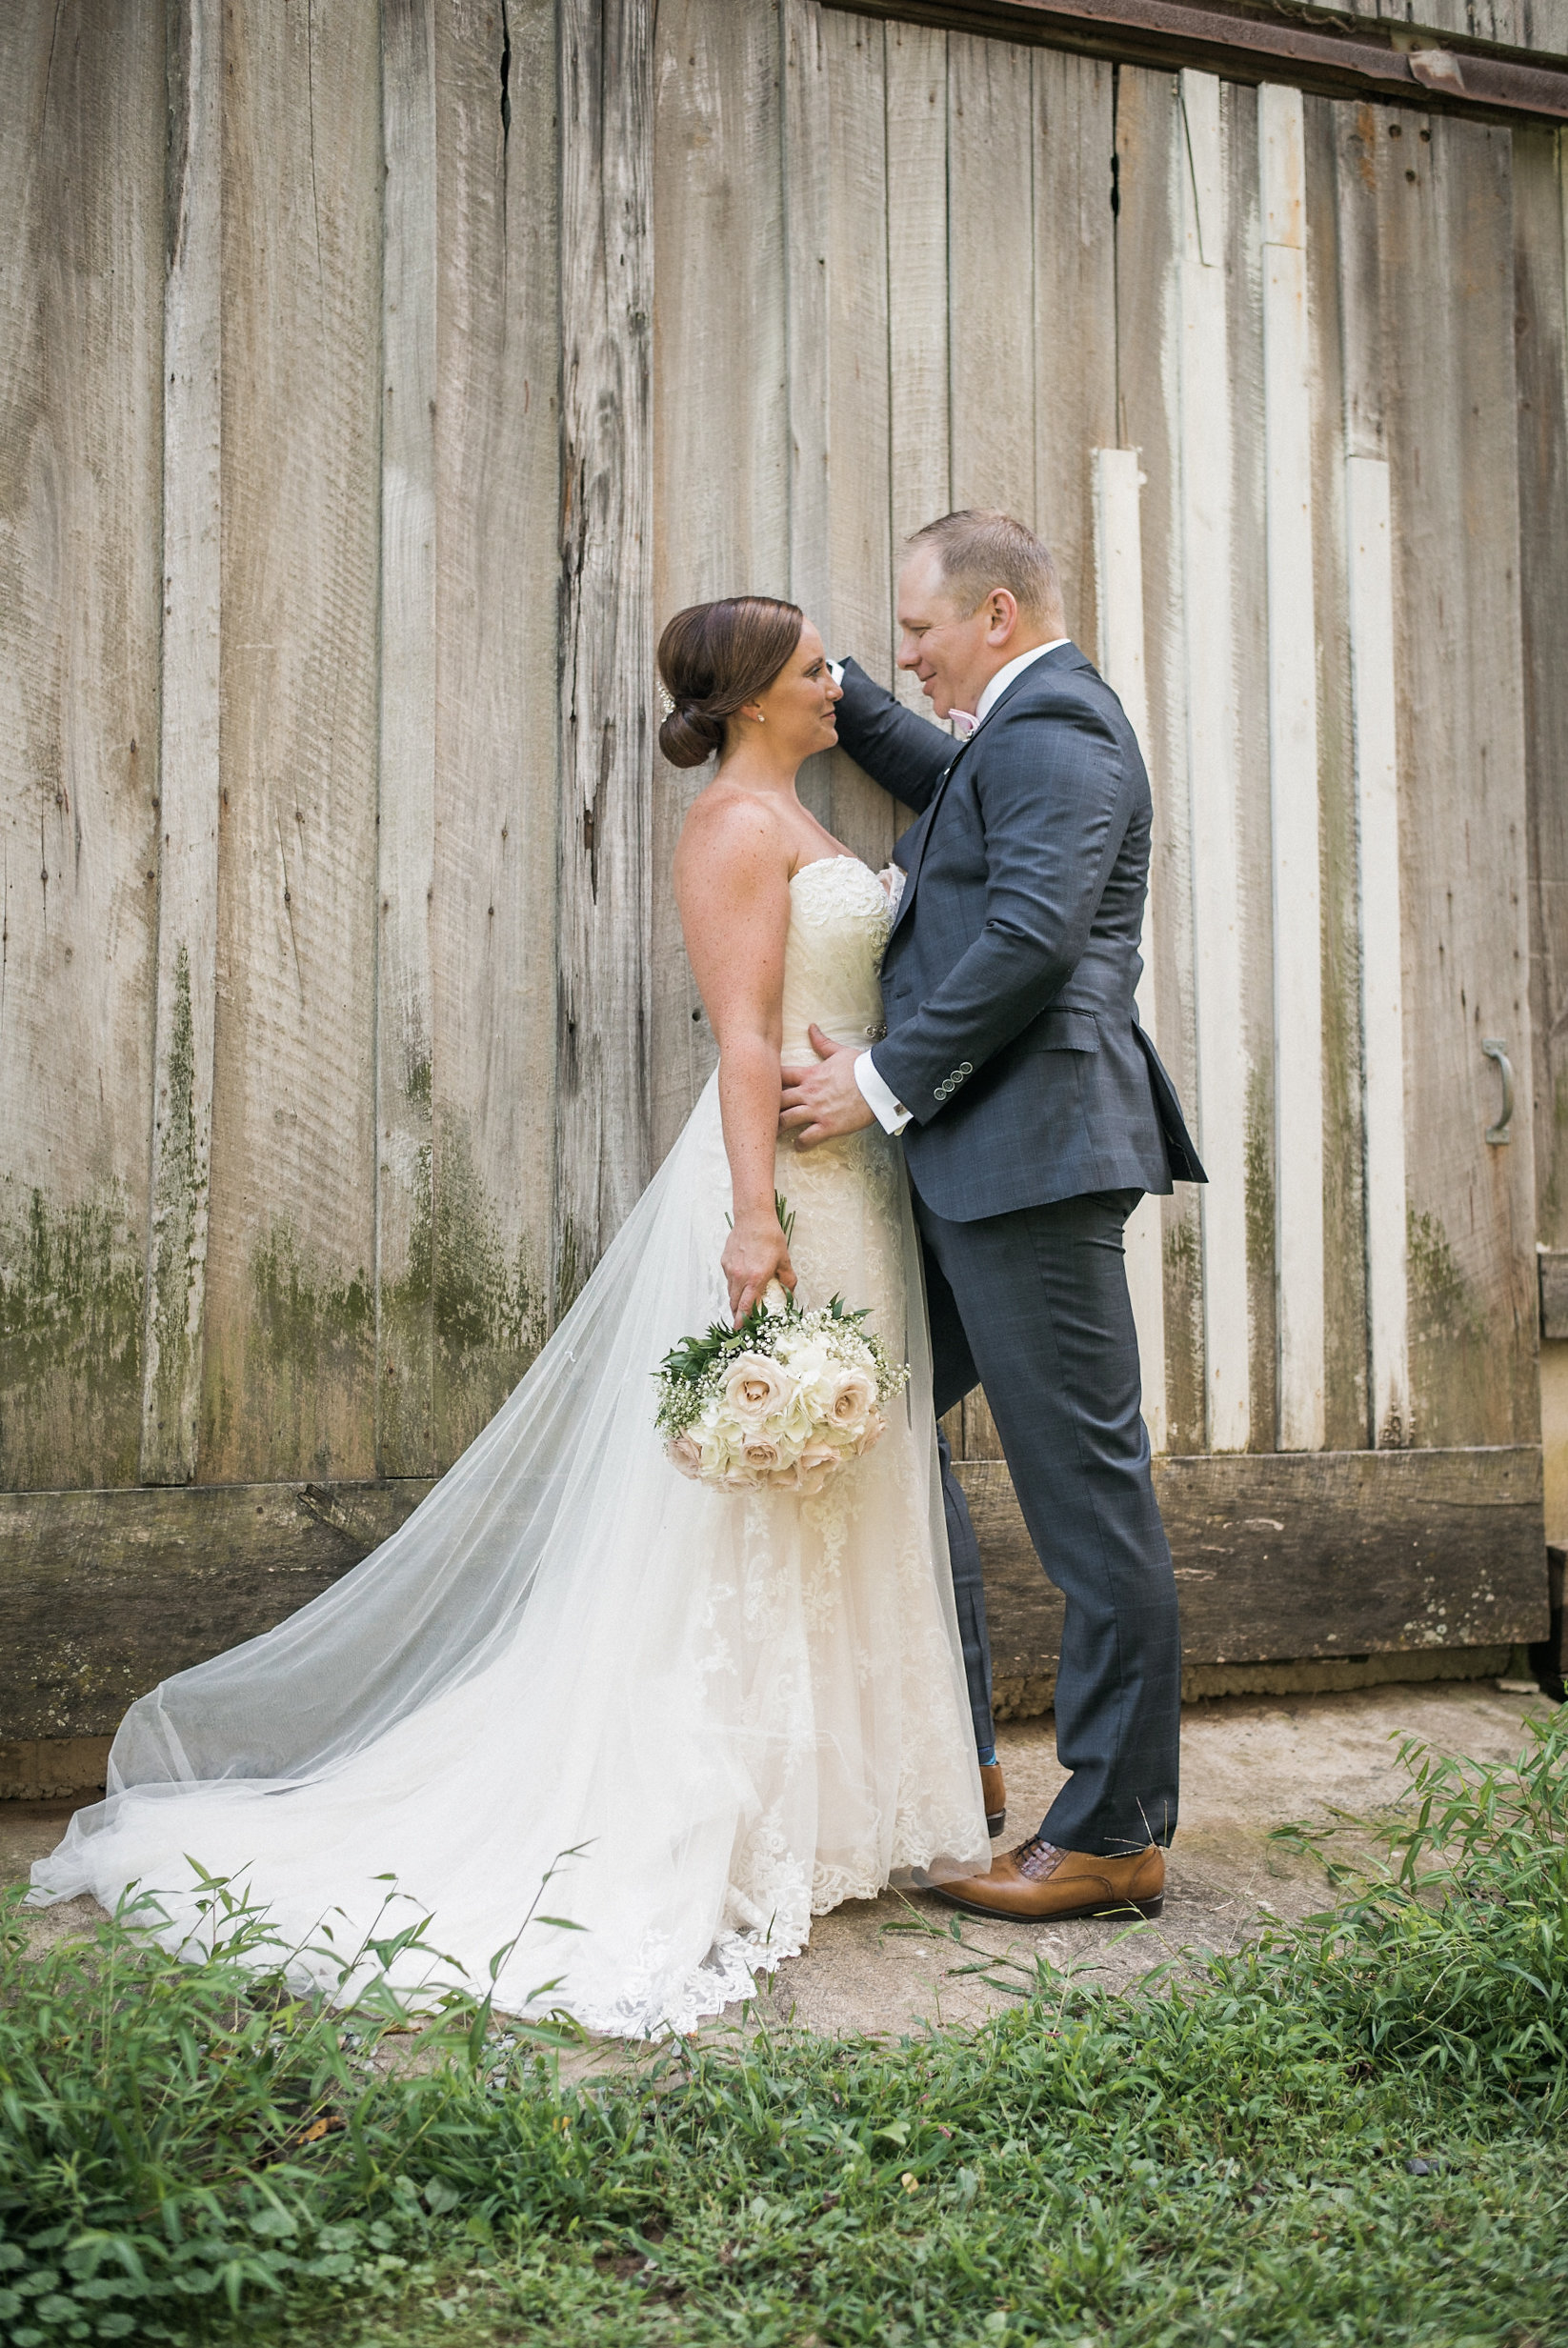 Bride and groom leaning against barn